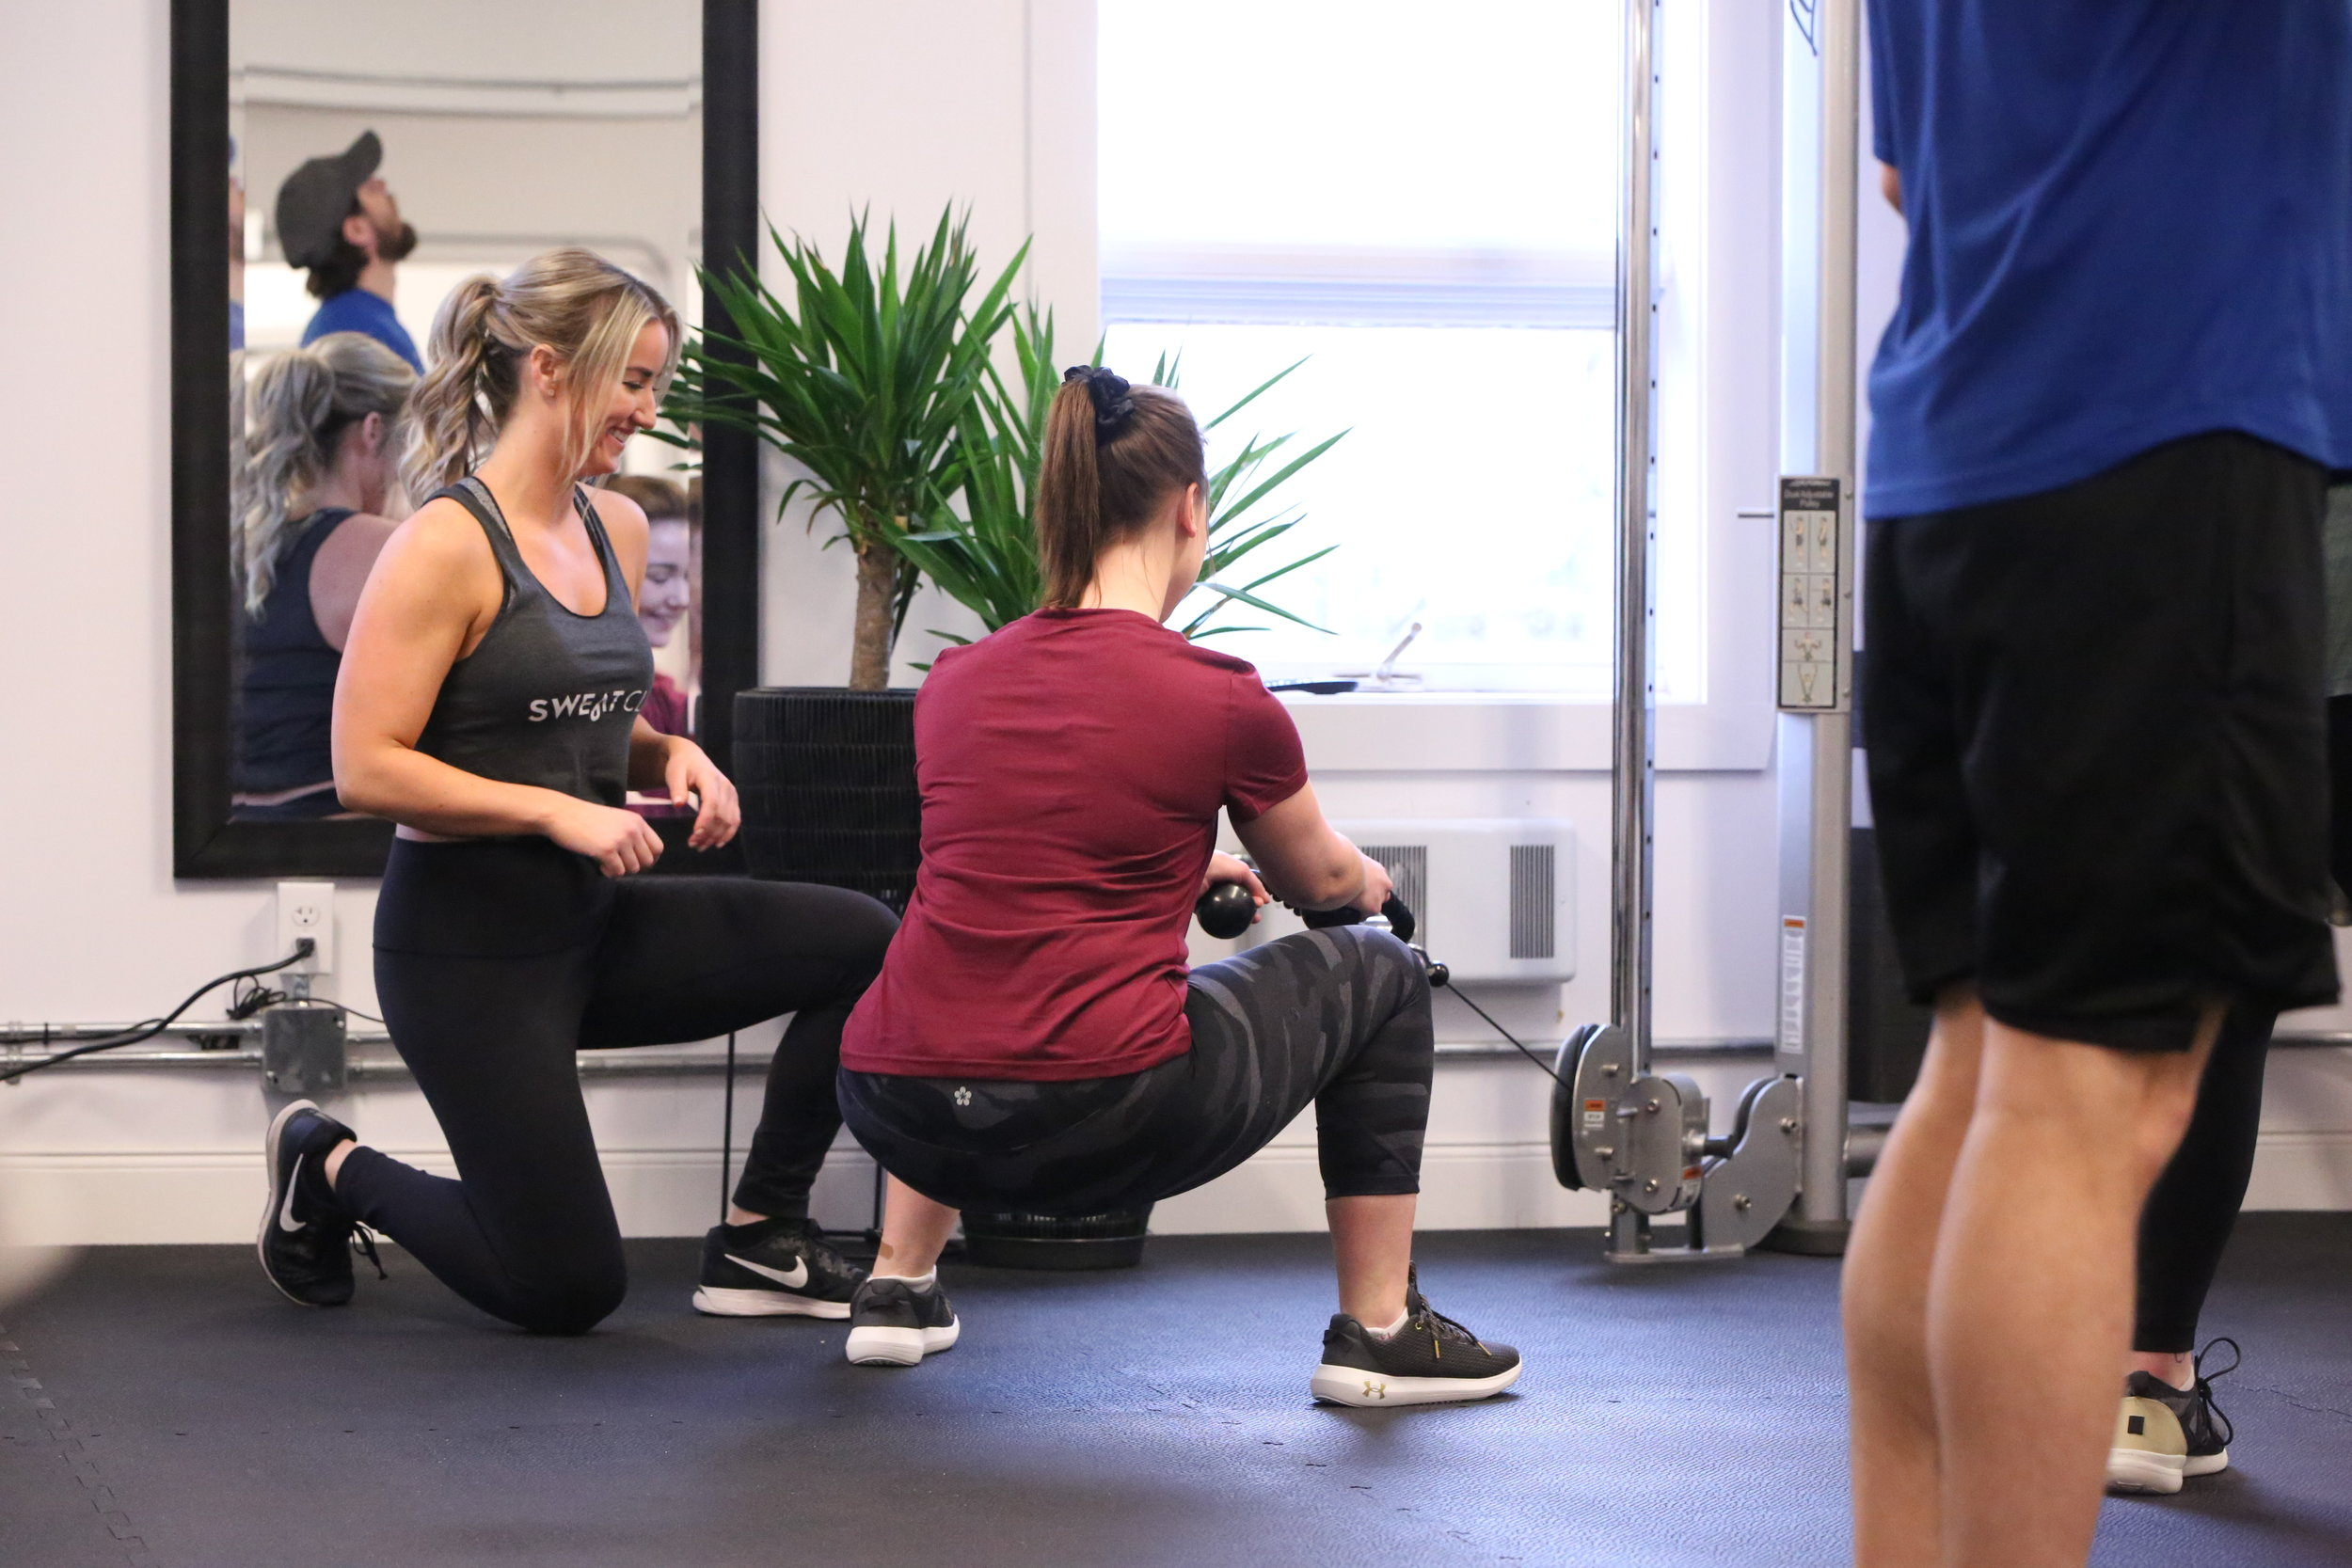 BOOTY + ABS - The focus of this class is on glutes and core but be ready for full body movements. Weights, plyometrics, and more in a circuit fashion. 45 minutes at lunch and 55 minutes in the evenings. All levels welcome.